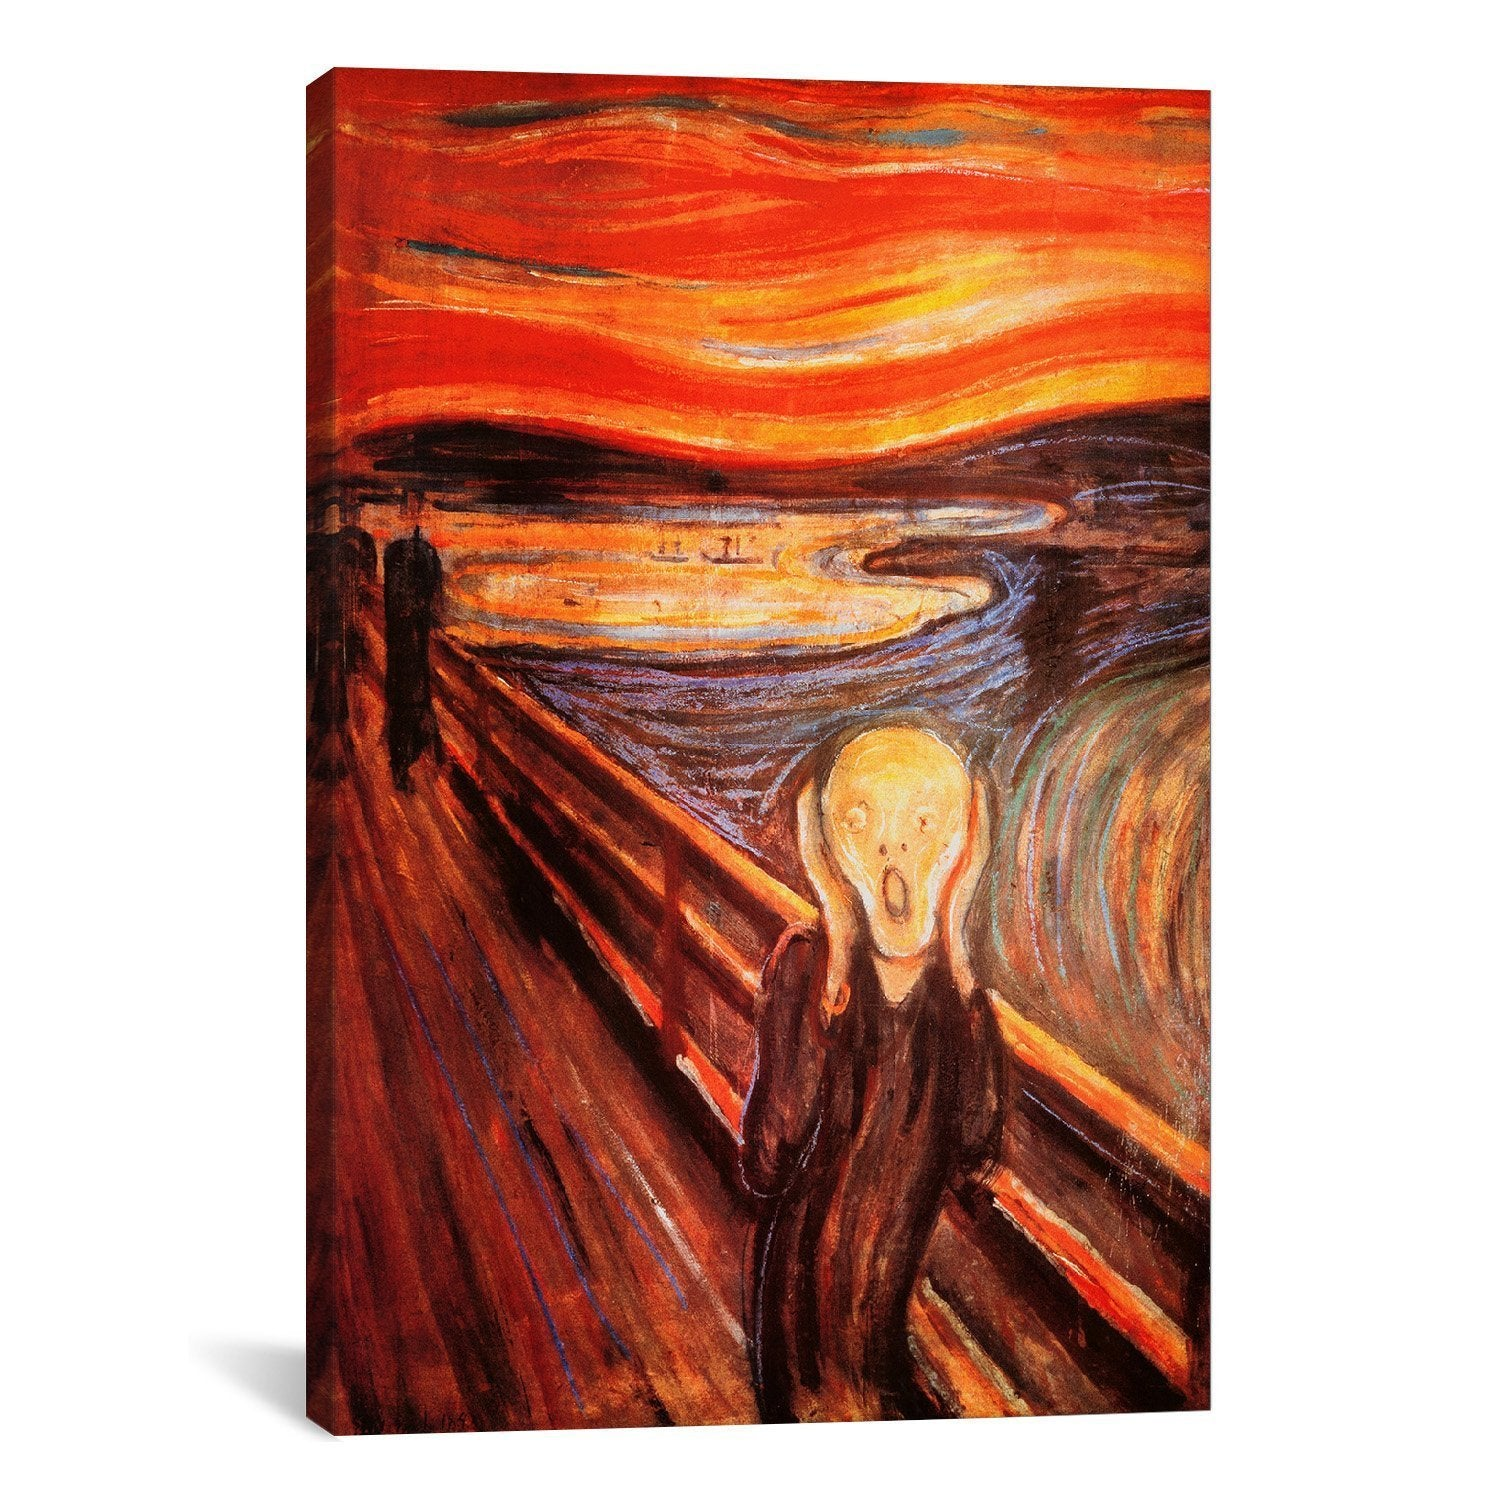 "Edvard Munch The Scream Canvas Art Print Painting Reproduction 24""x18"""